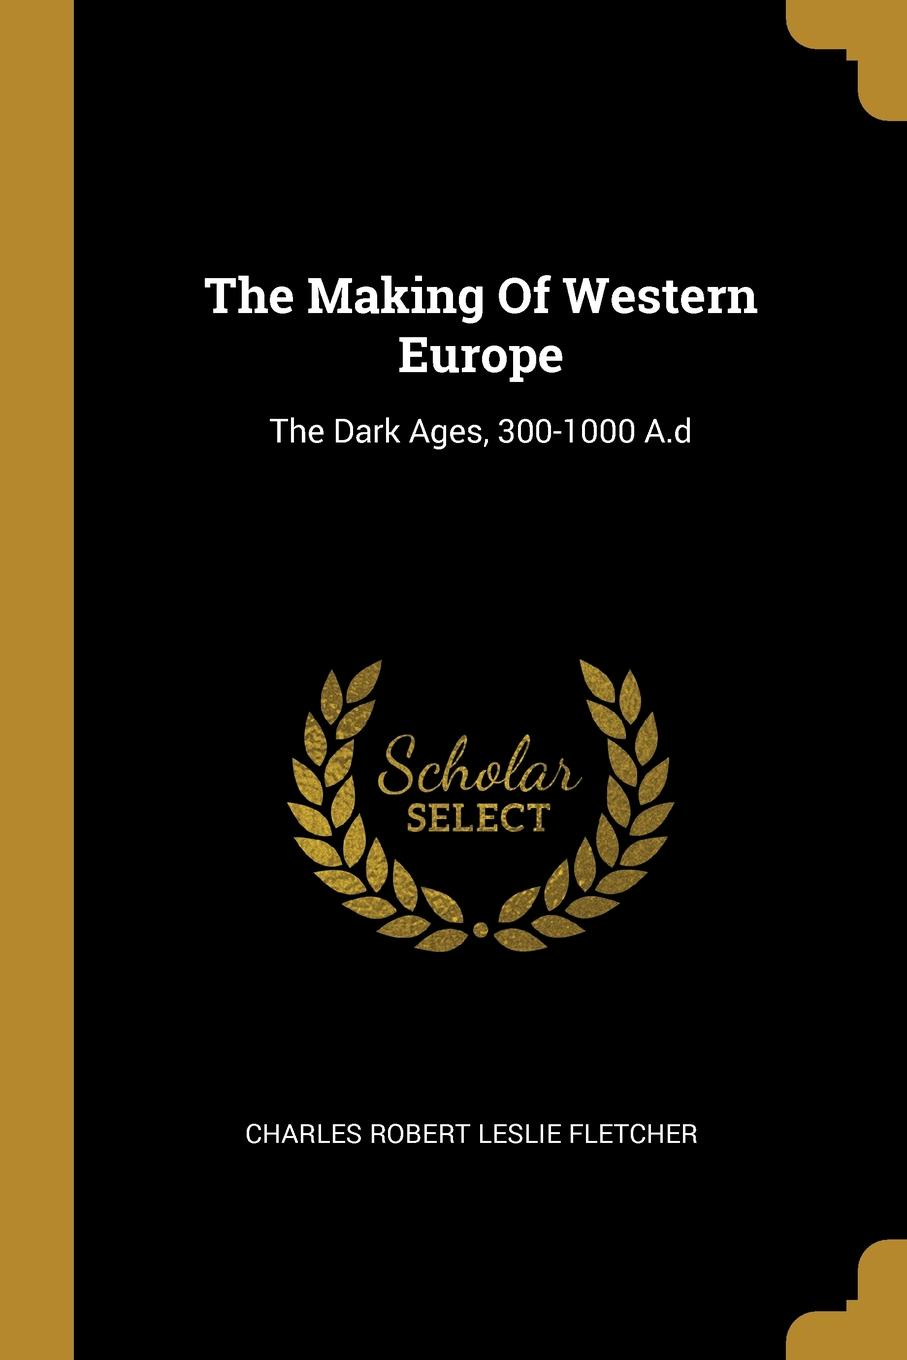 The Making Of Western Europe. The Dark Ages, 300-1000 A.d